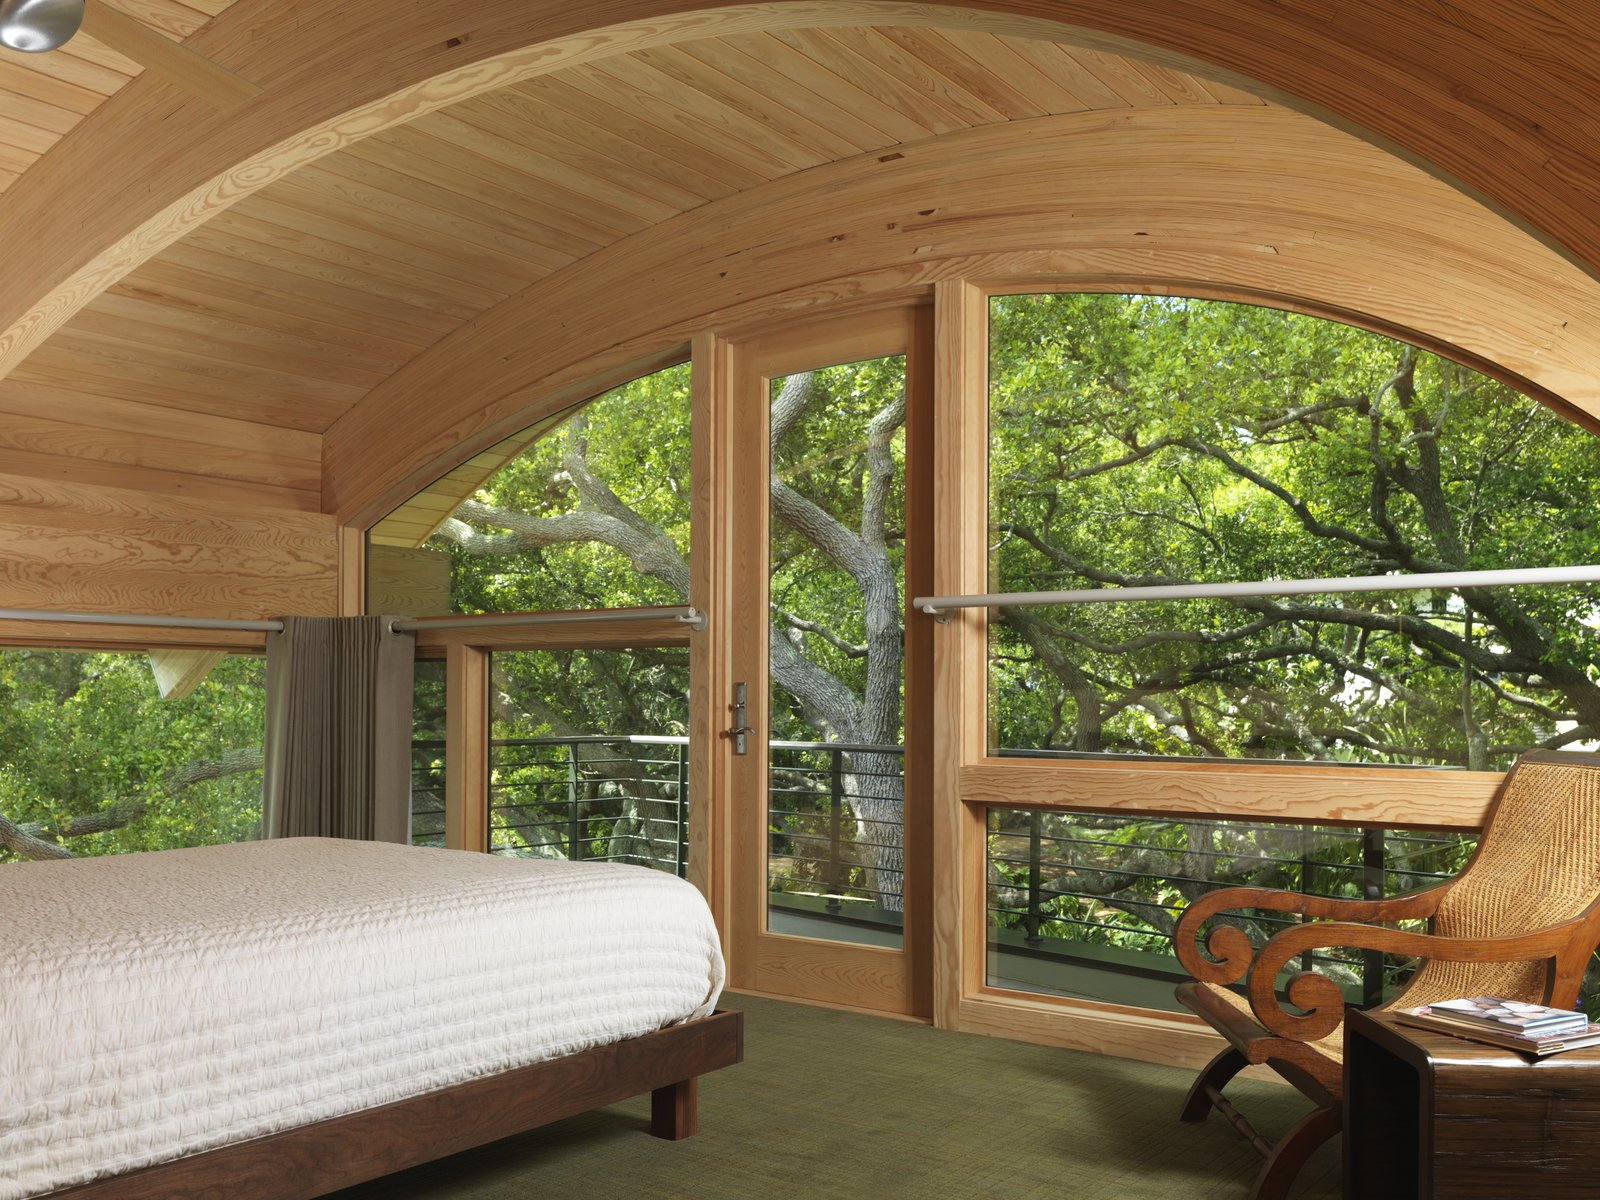 Casey Key House  In this playful treehouse-style bedroom, custom arched windows surround the room and meet the wooden ceiling. Elements of wood and modern architecture draw the sound of rustling leaves and midday breeze into this cozy treetop retreat.  Architect: Jerry Sparkman; Architecture Firm: Sweet Sparkman Architects; Location: Casey Key, FL   #marvin #windows #doors  #indoor #outdoor #transition #caseykeys #FL    Photo 18 of 25 in Photo Essay: Enchanting Tree Houses from Indoor/Outdoor Transitions